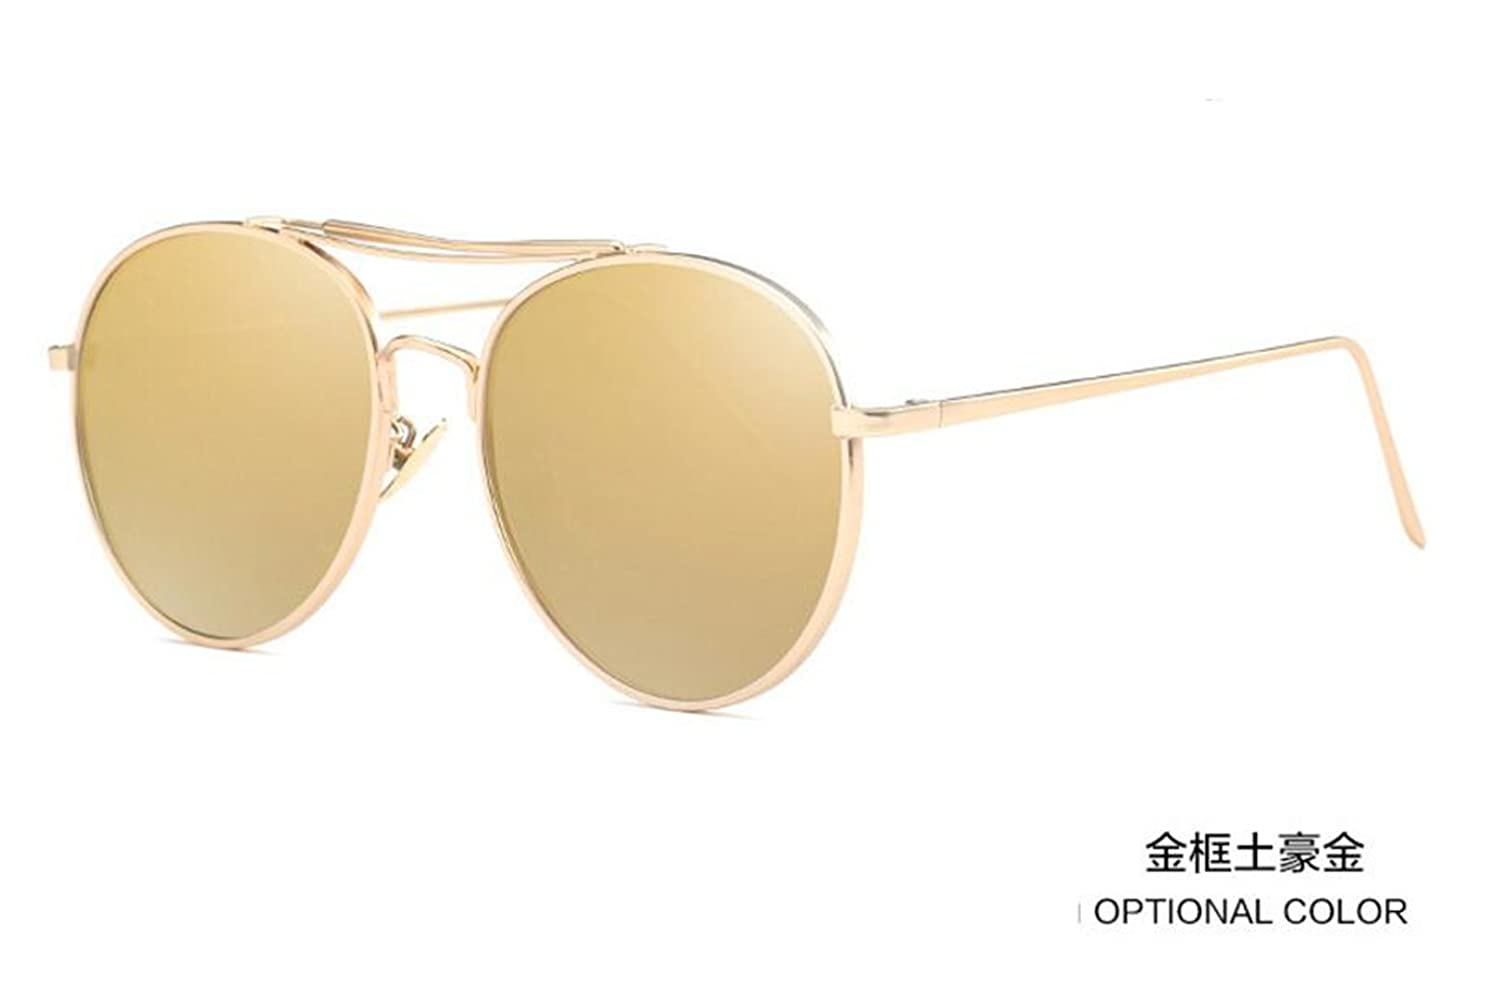 personality sunglasses GLSYJ@,Polarized color film men and women, fashion sunglasses sunglasses large box